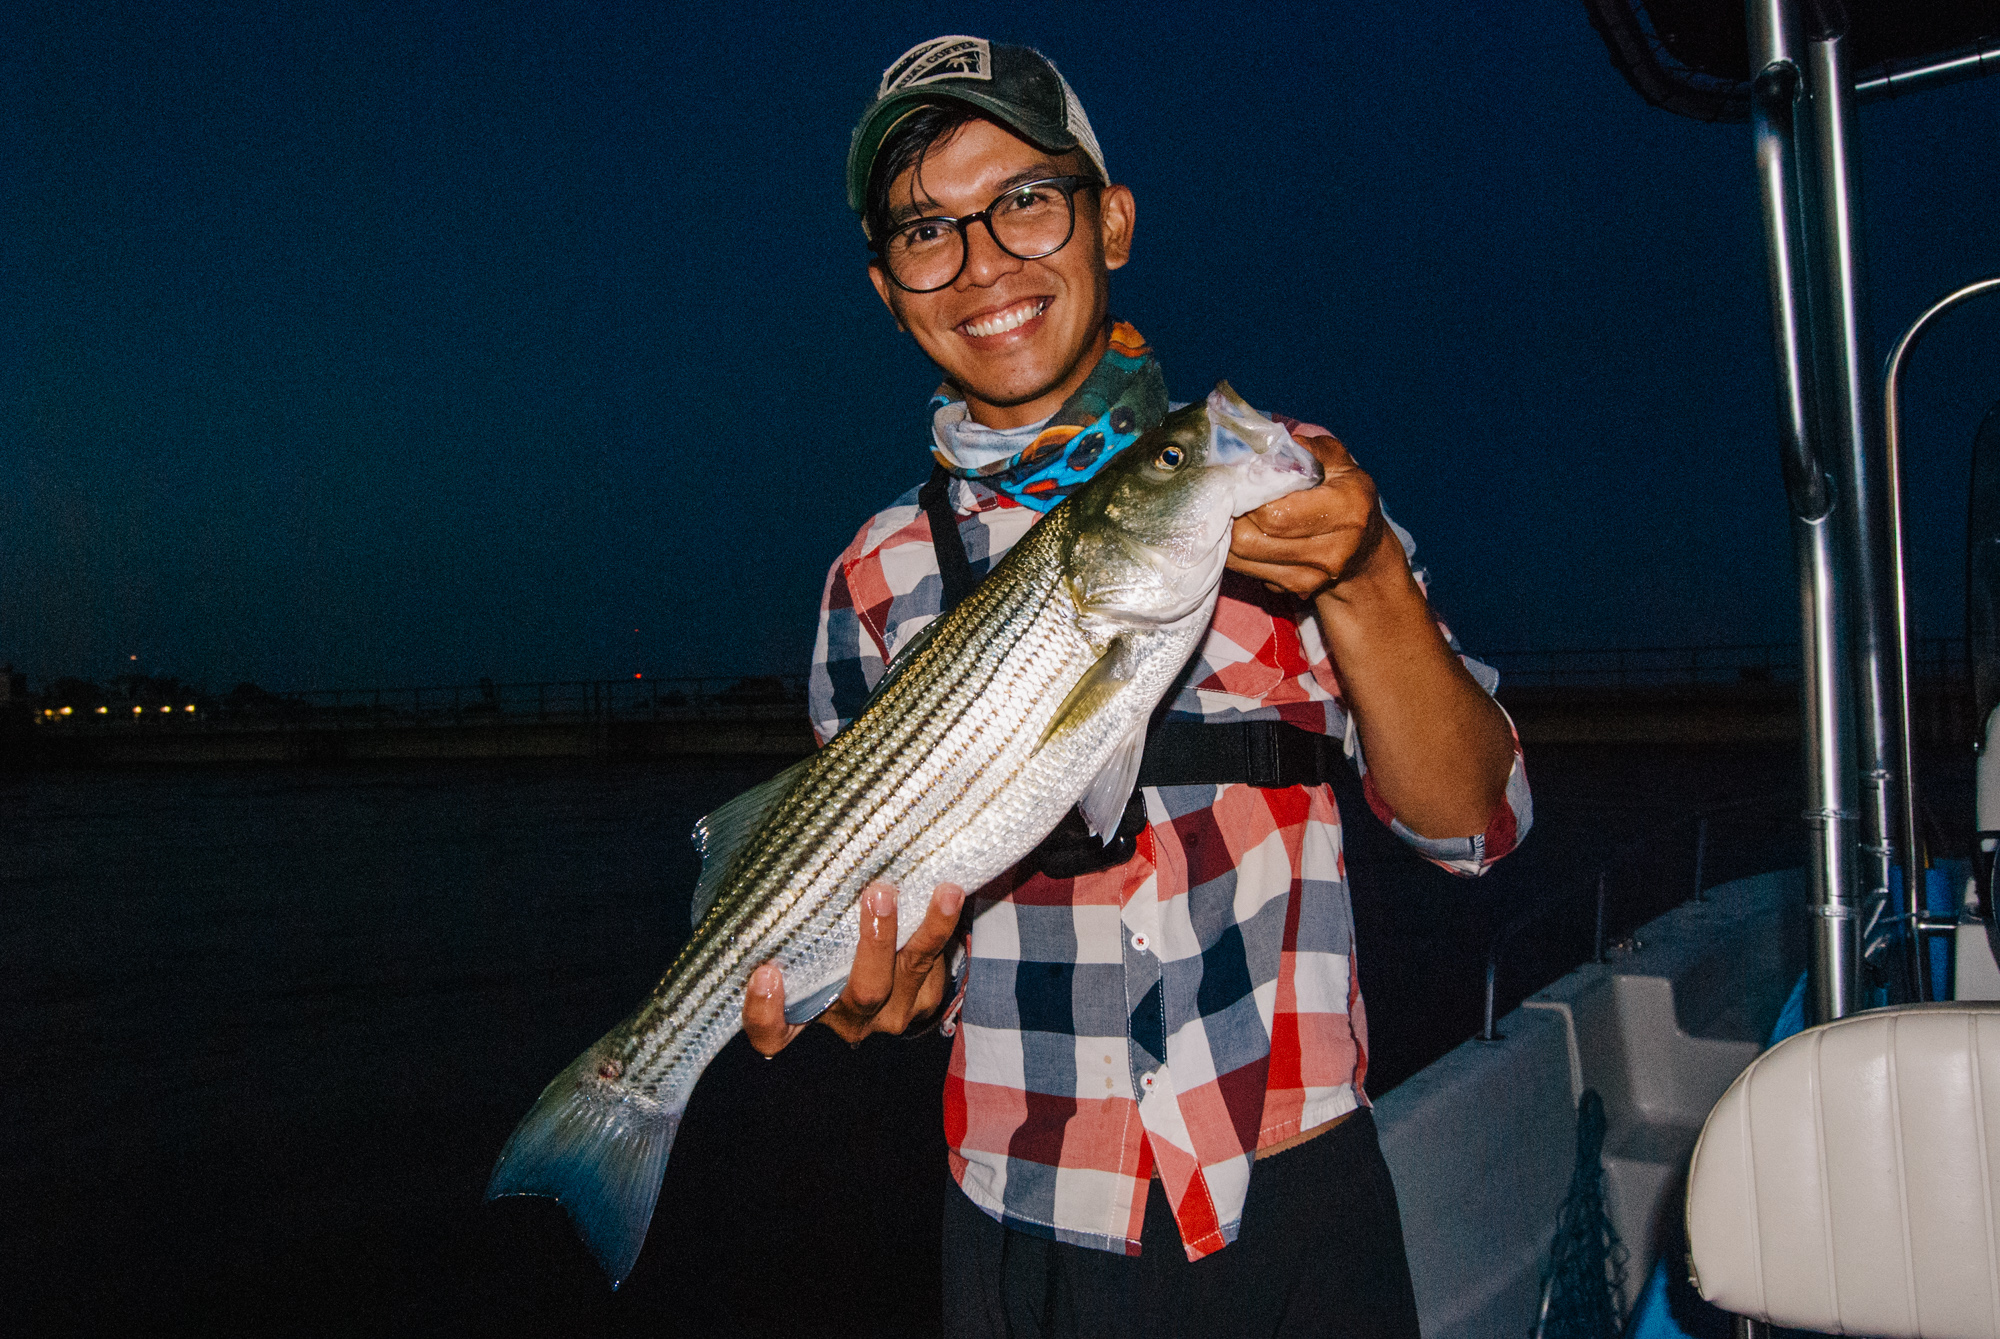 Harbour Yacht Club and Marina Striped bass